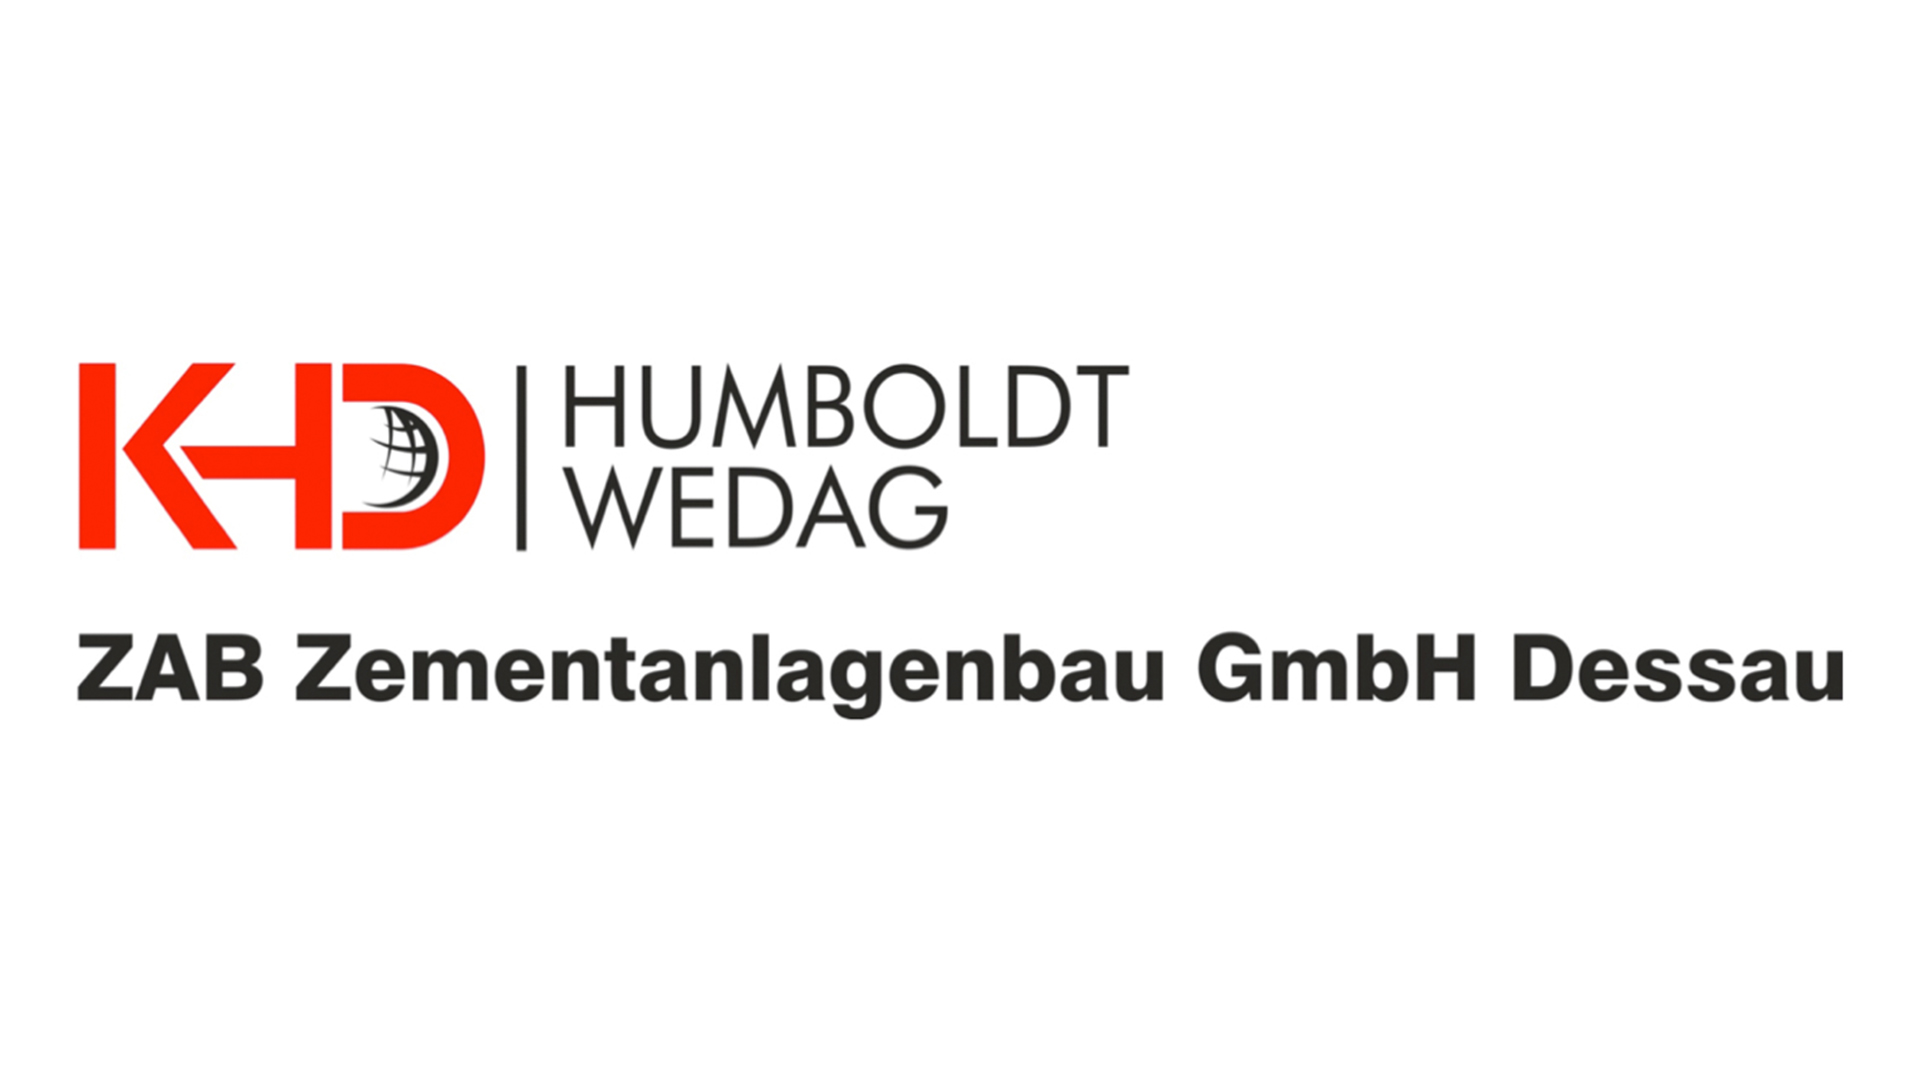 Logo der KHD Humboldt Wedag International AG